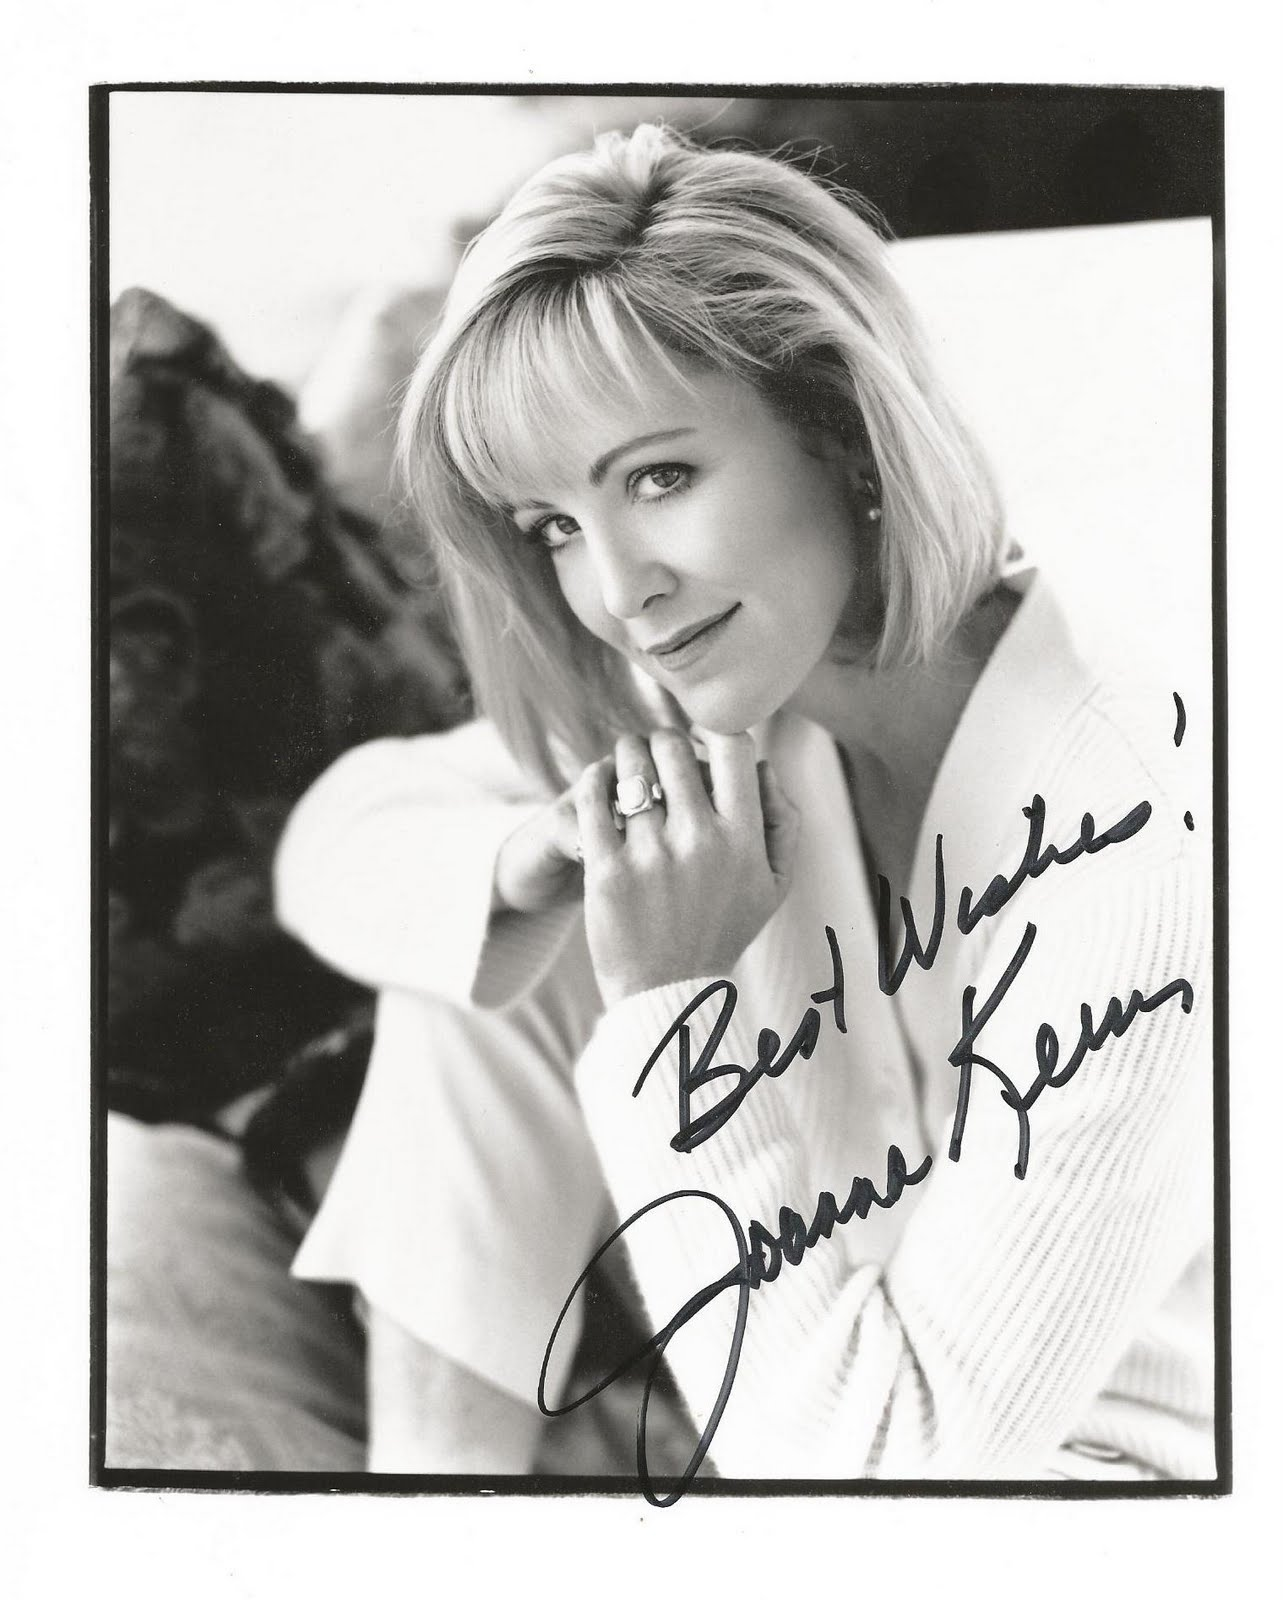 joanna kerns law and order